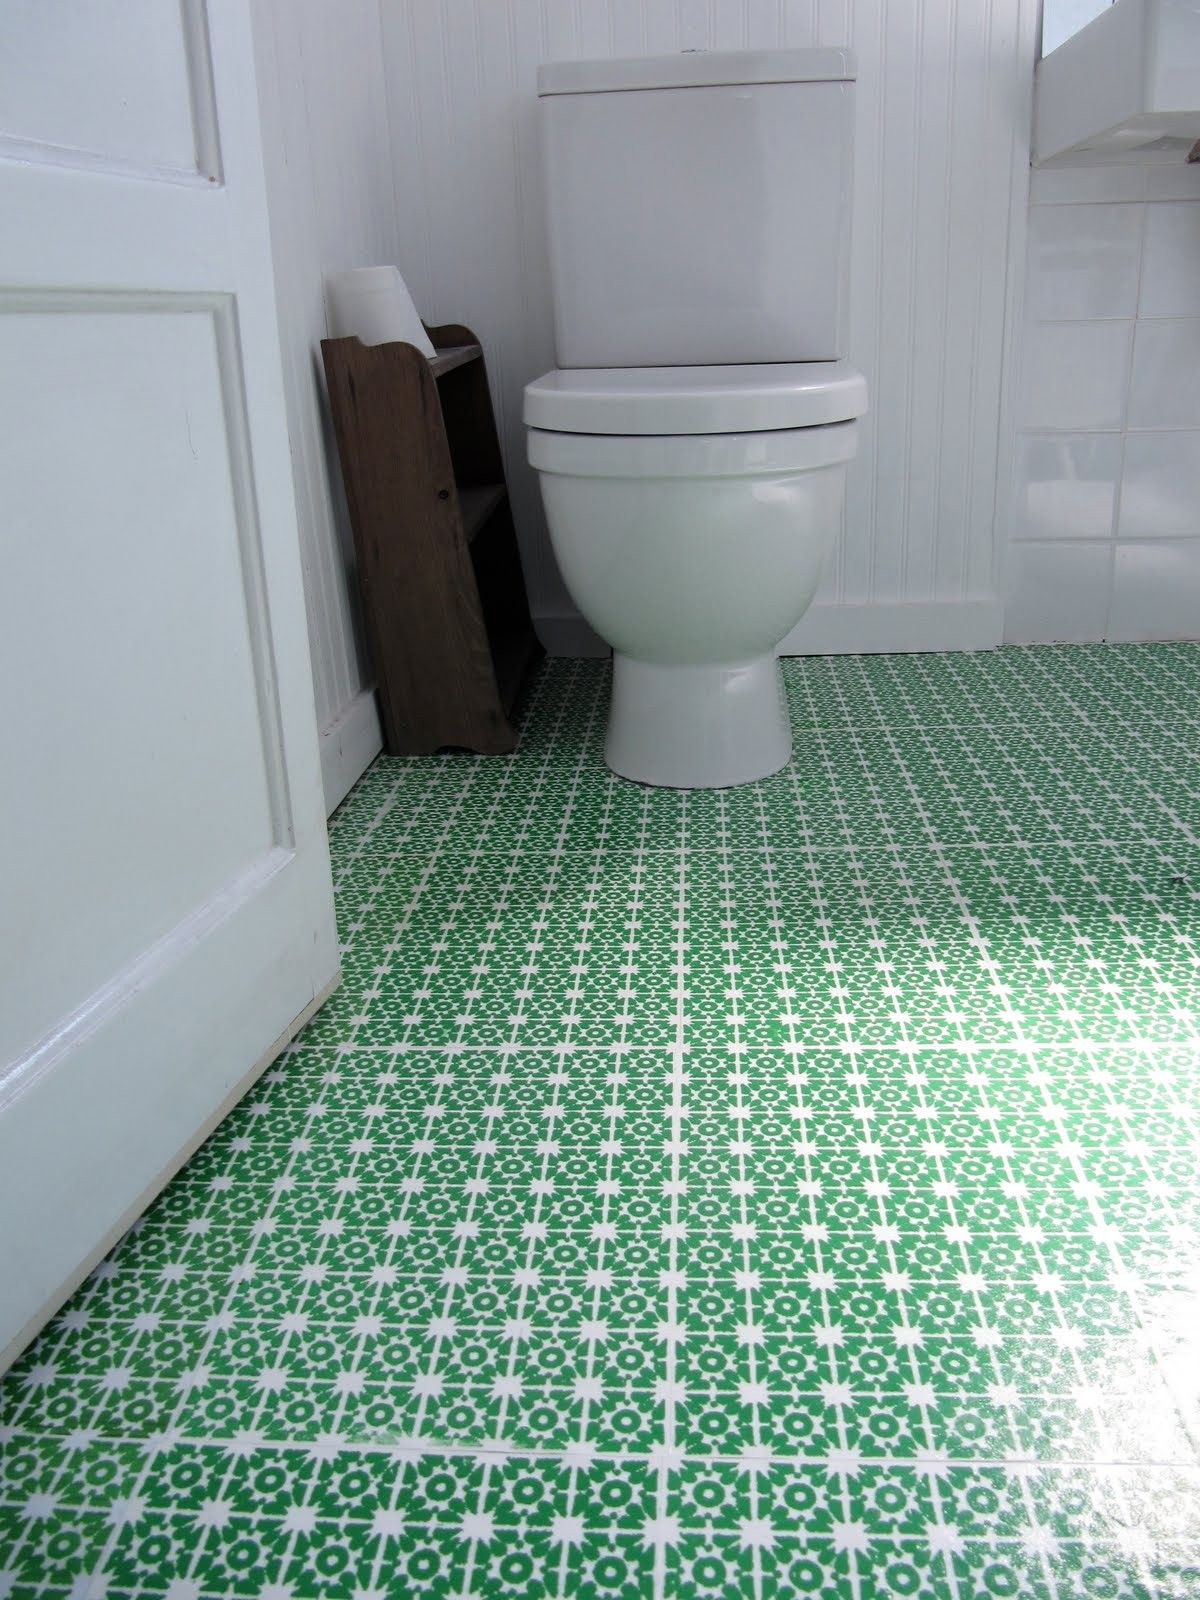 Kitchen Bathroom Flooring Beautiful Patterned Green Bathroom Vinyl Flooring For White Room